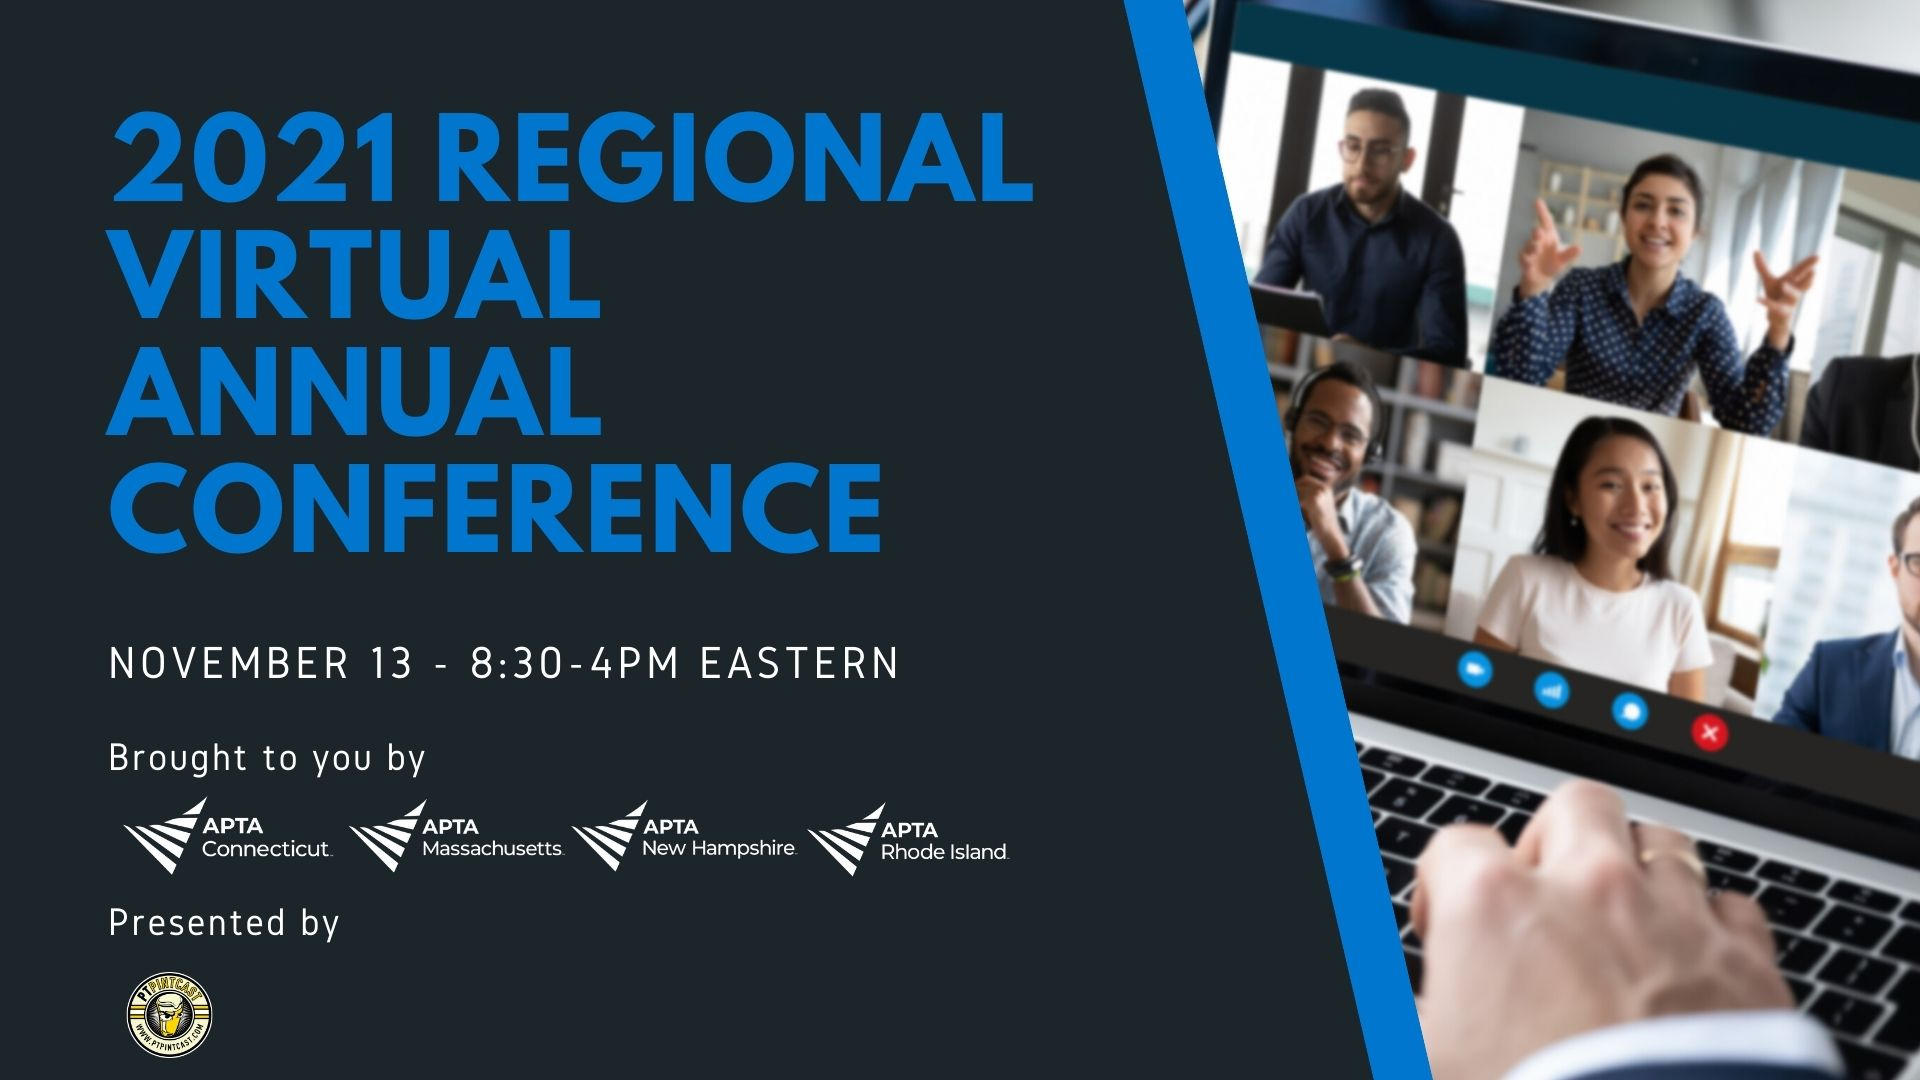 Photo for 2021 Regional Virtual Annual Conference on ViewStub